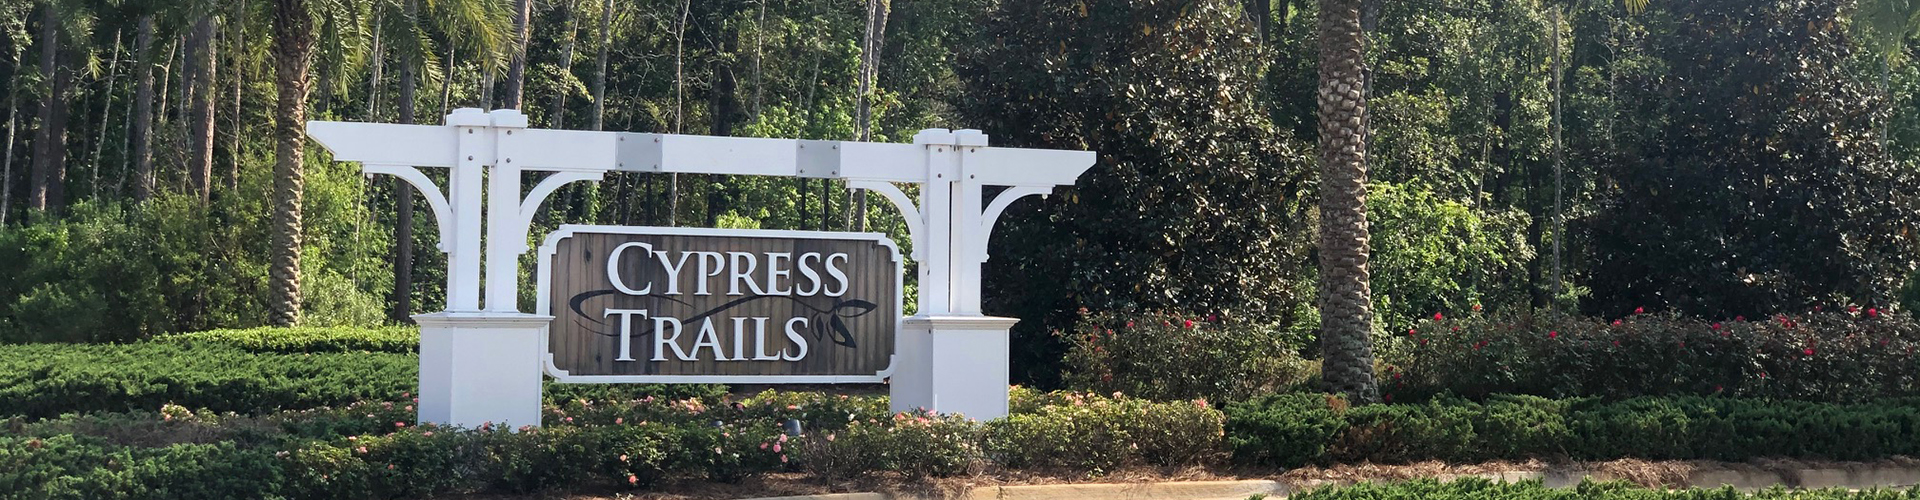 Cypress Trails Cover Image